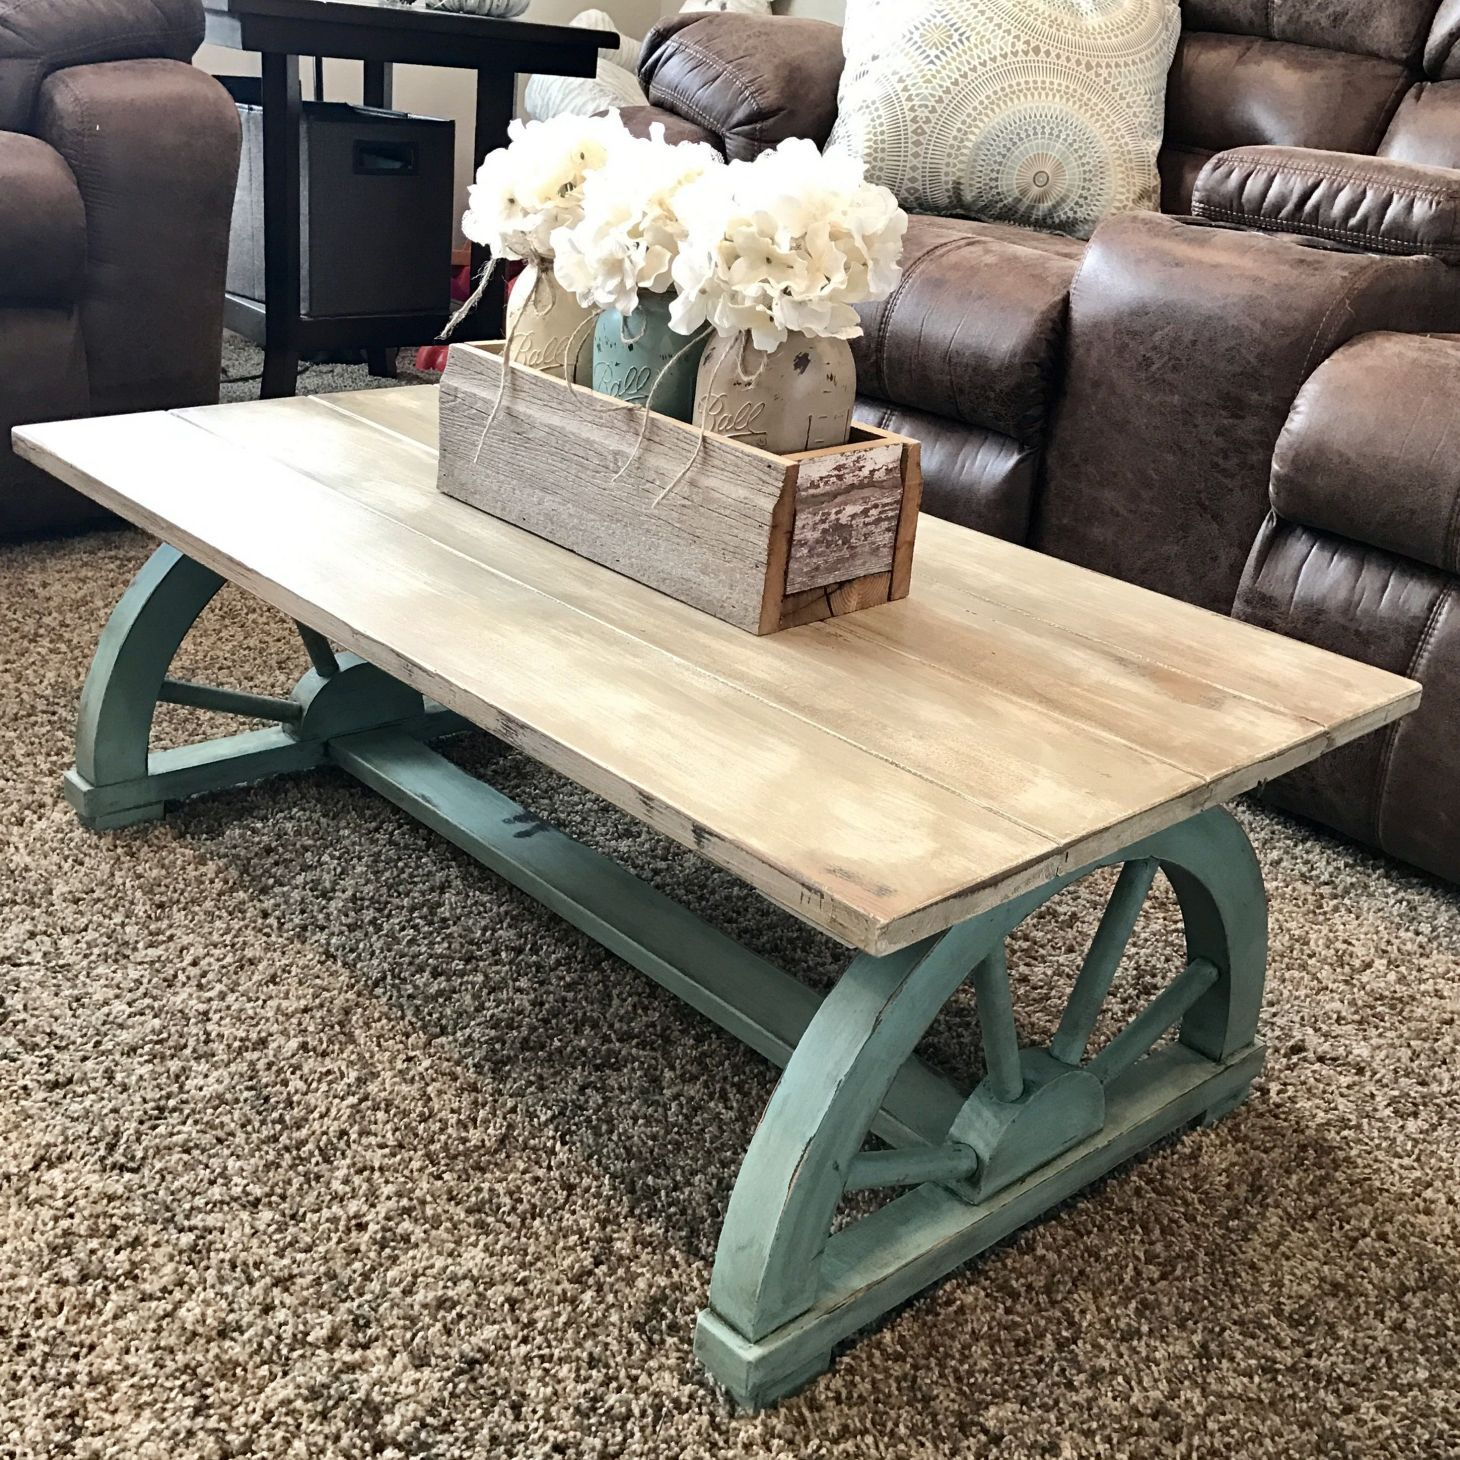 Farmhouse Coffee Table Design 21 images